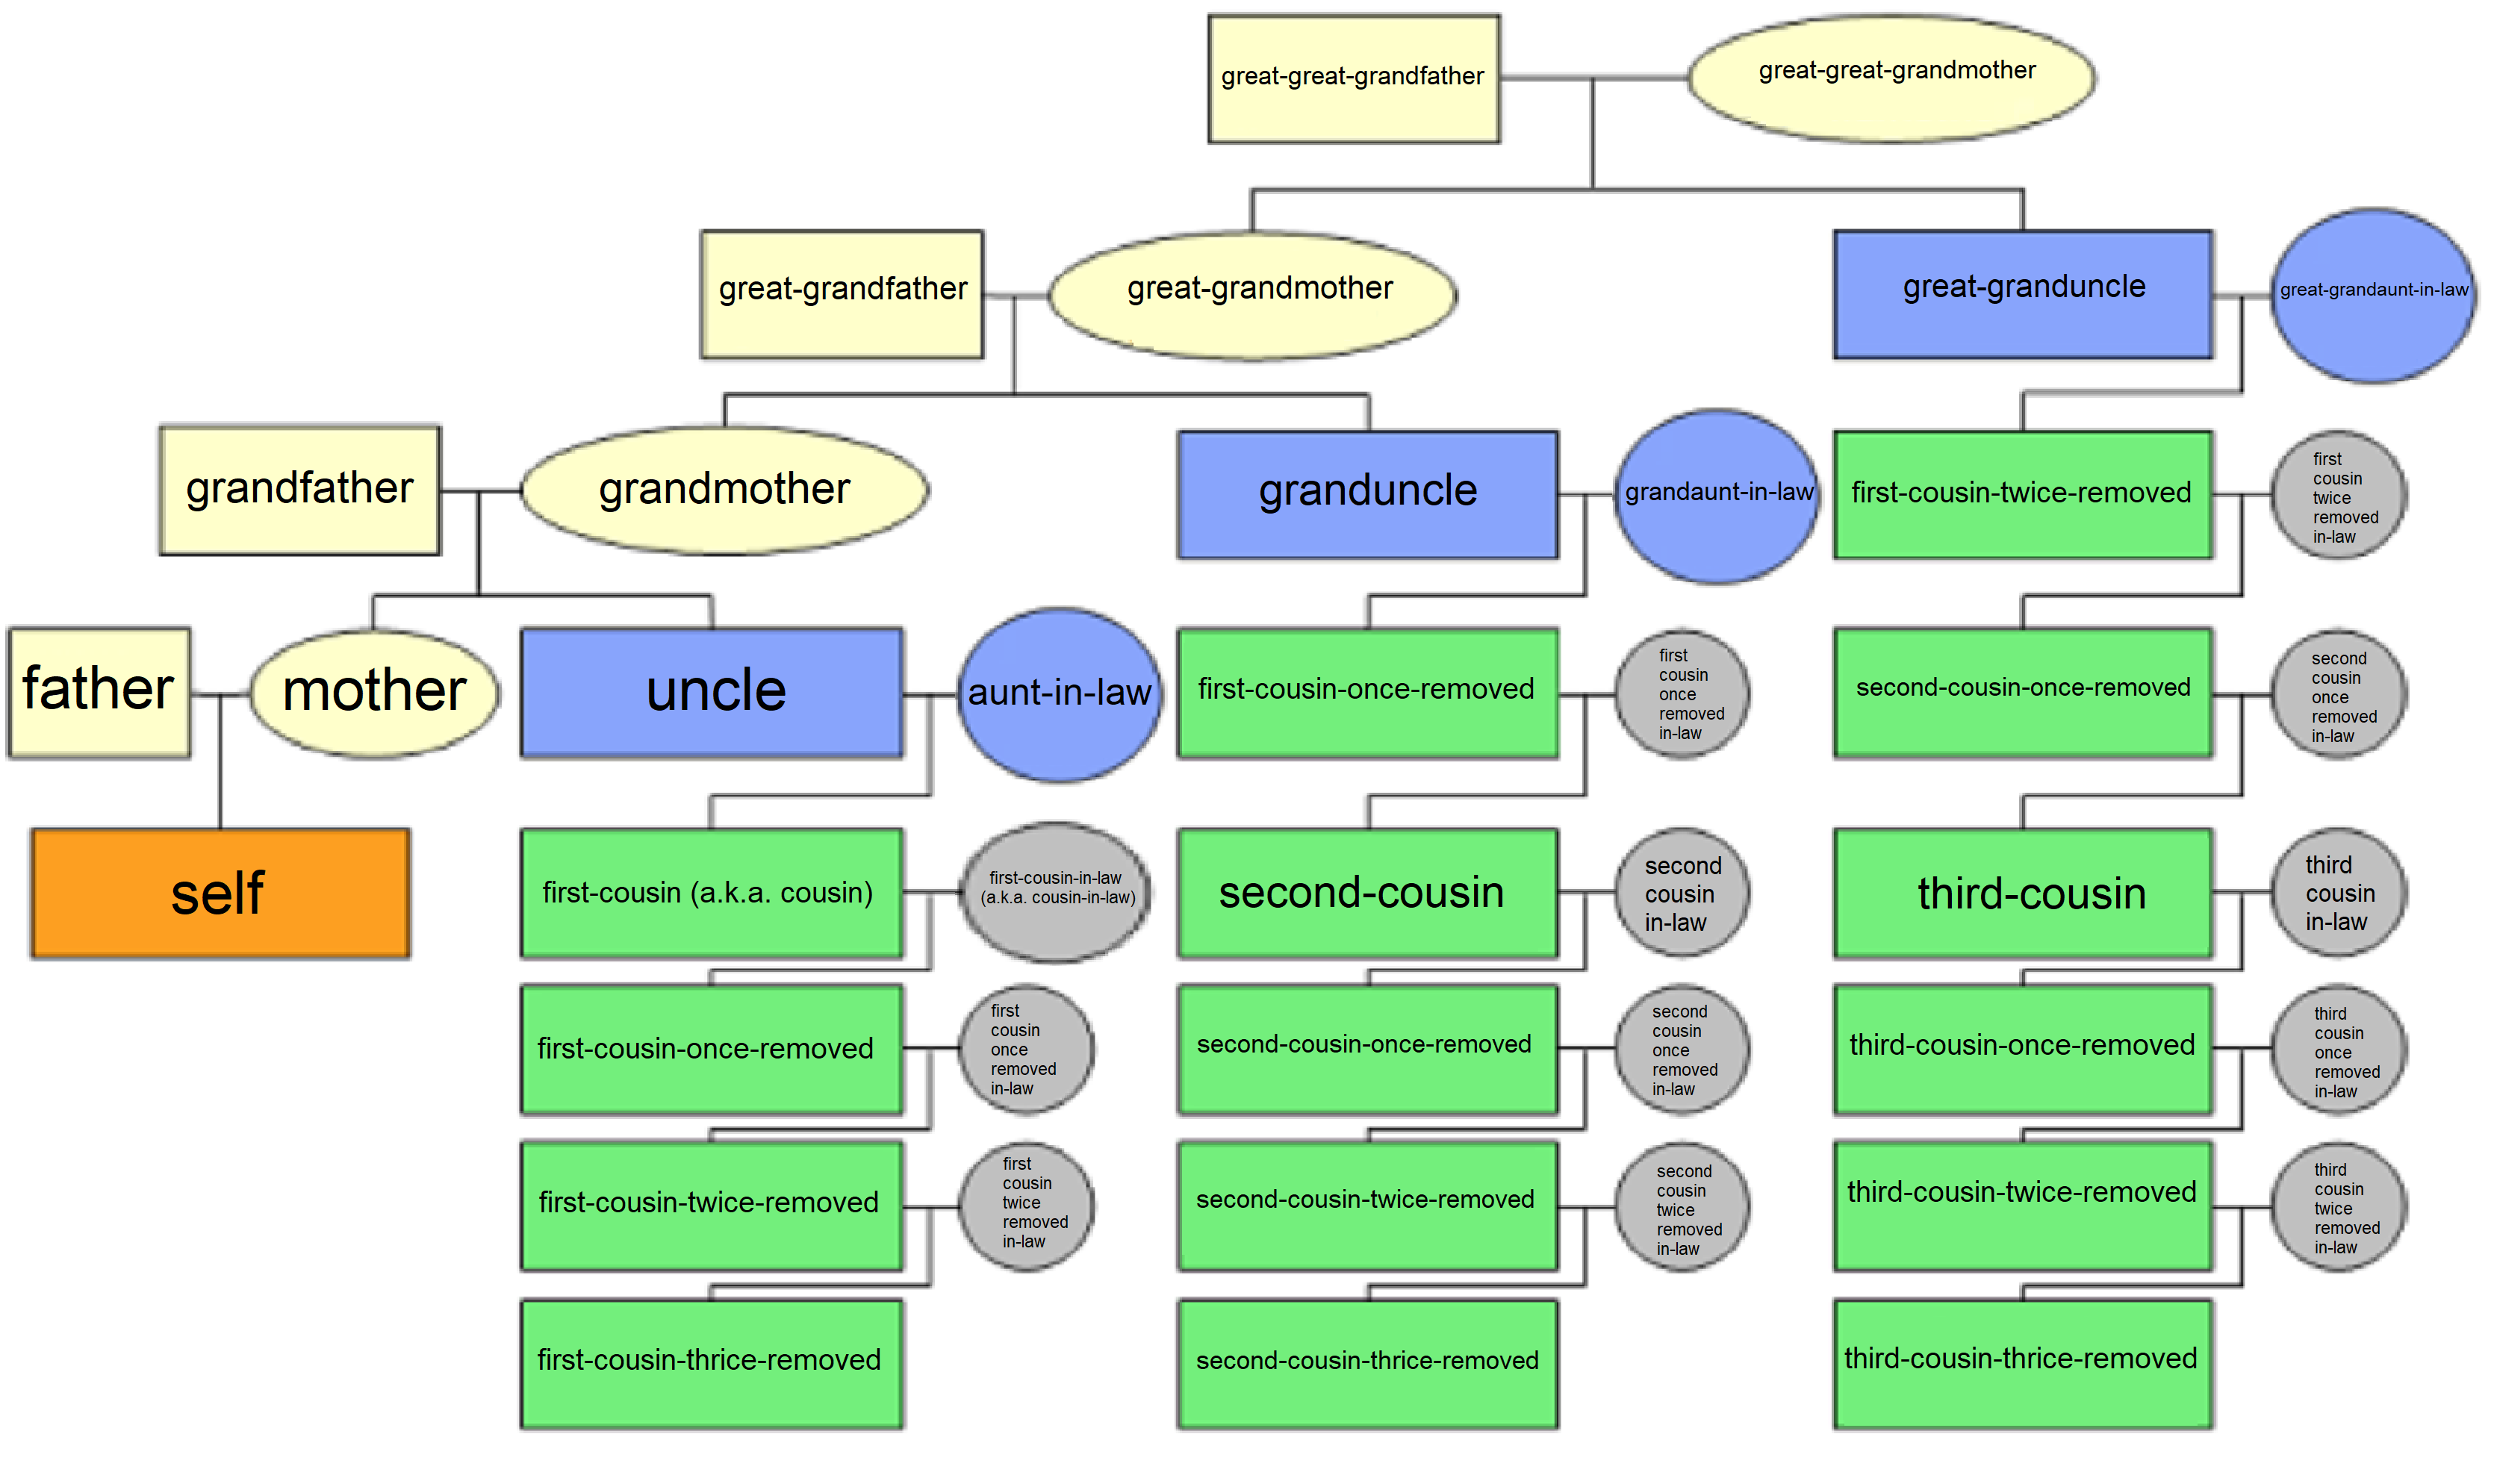 File:Cousin tree.png